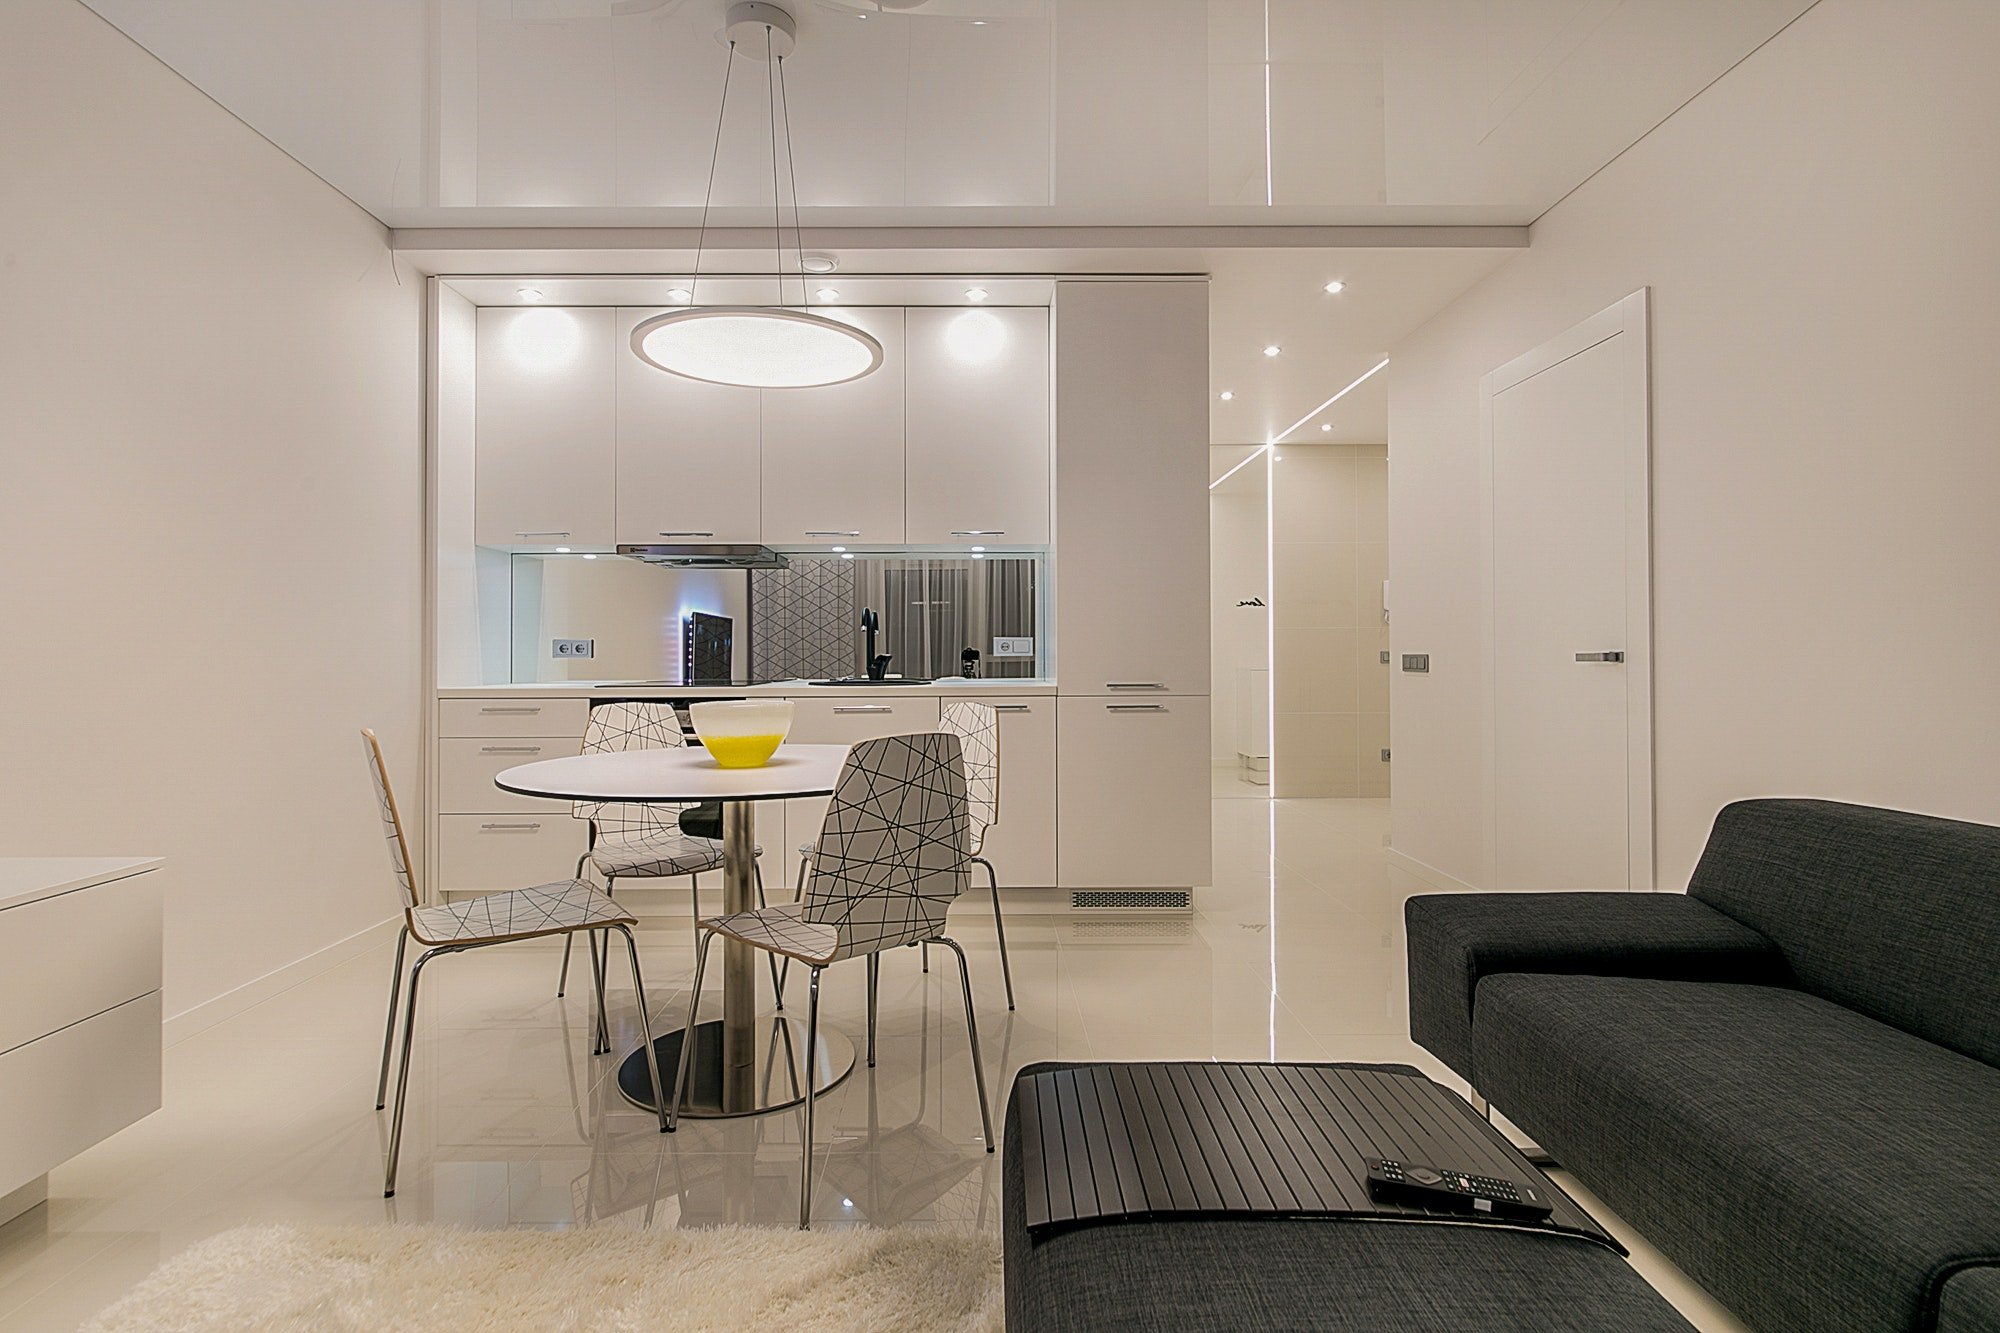 Pictured - An interior design of an apartment | Source: Pexels